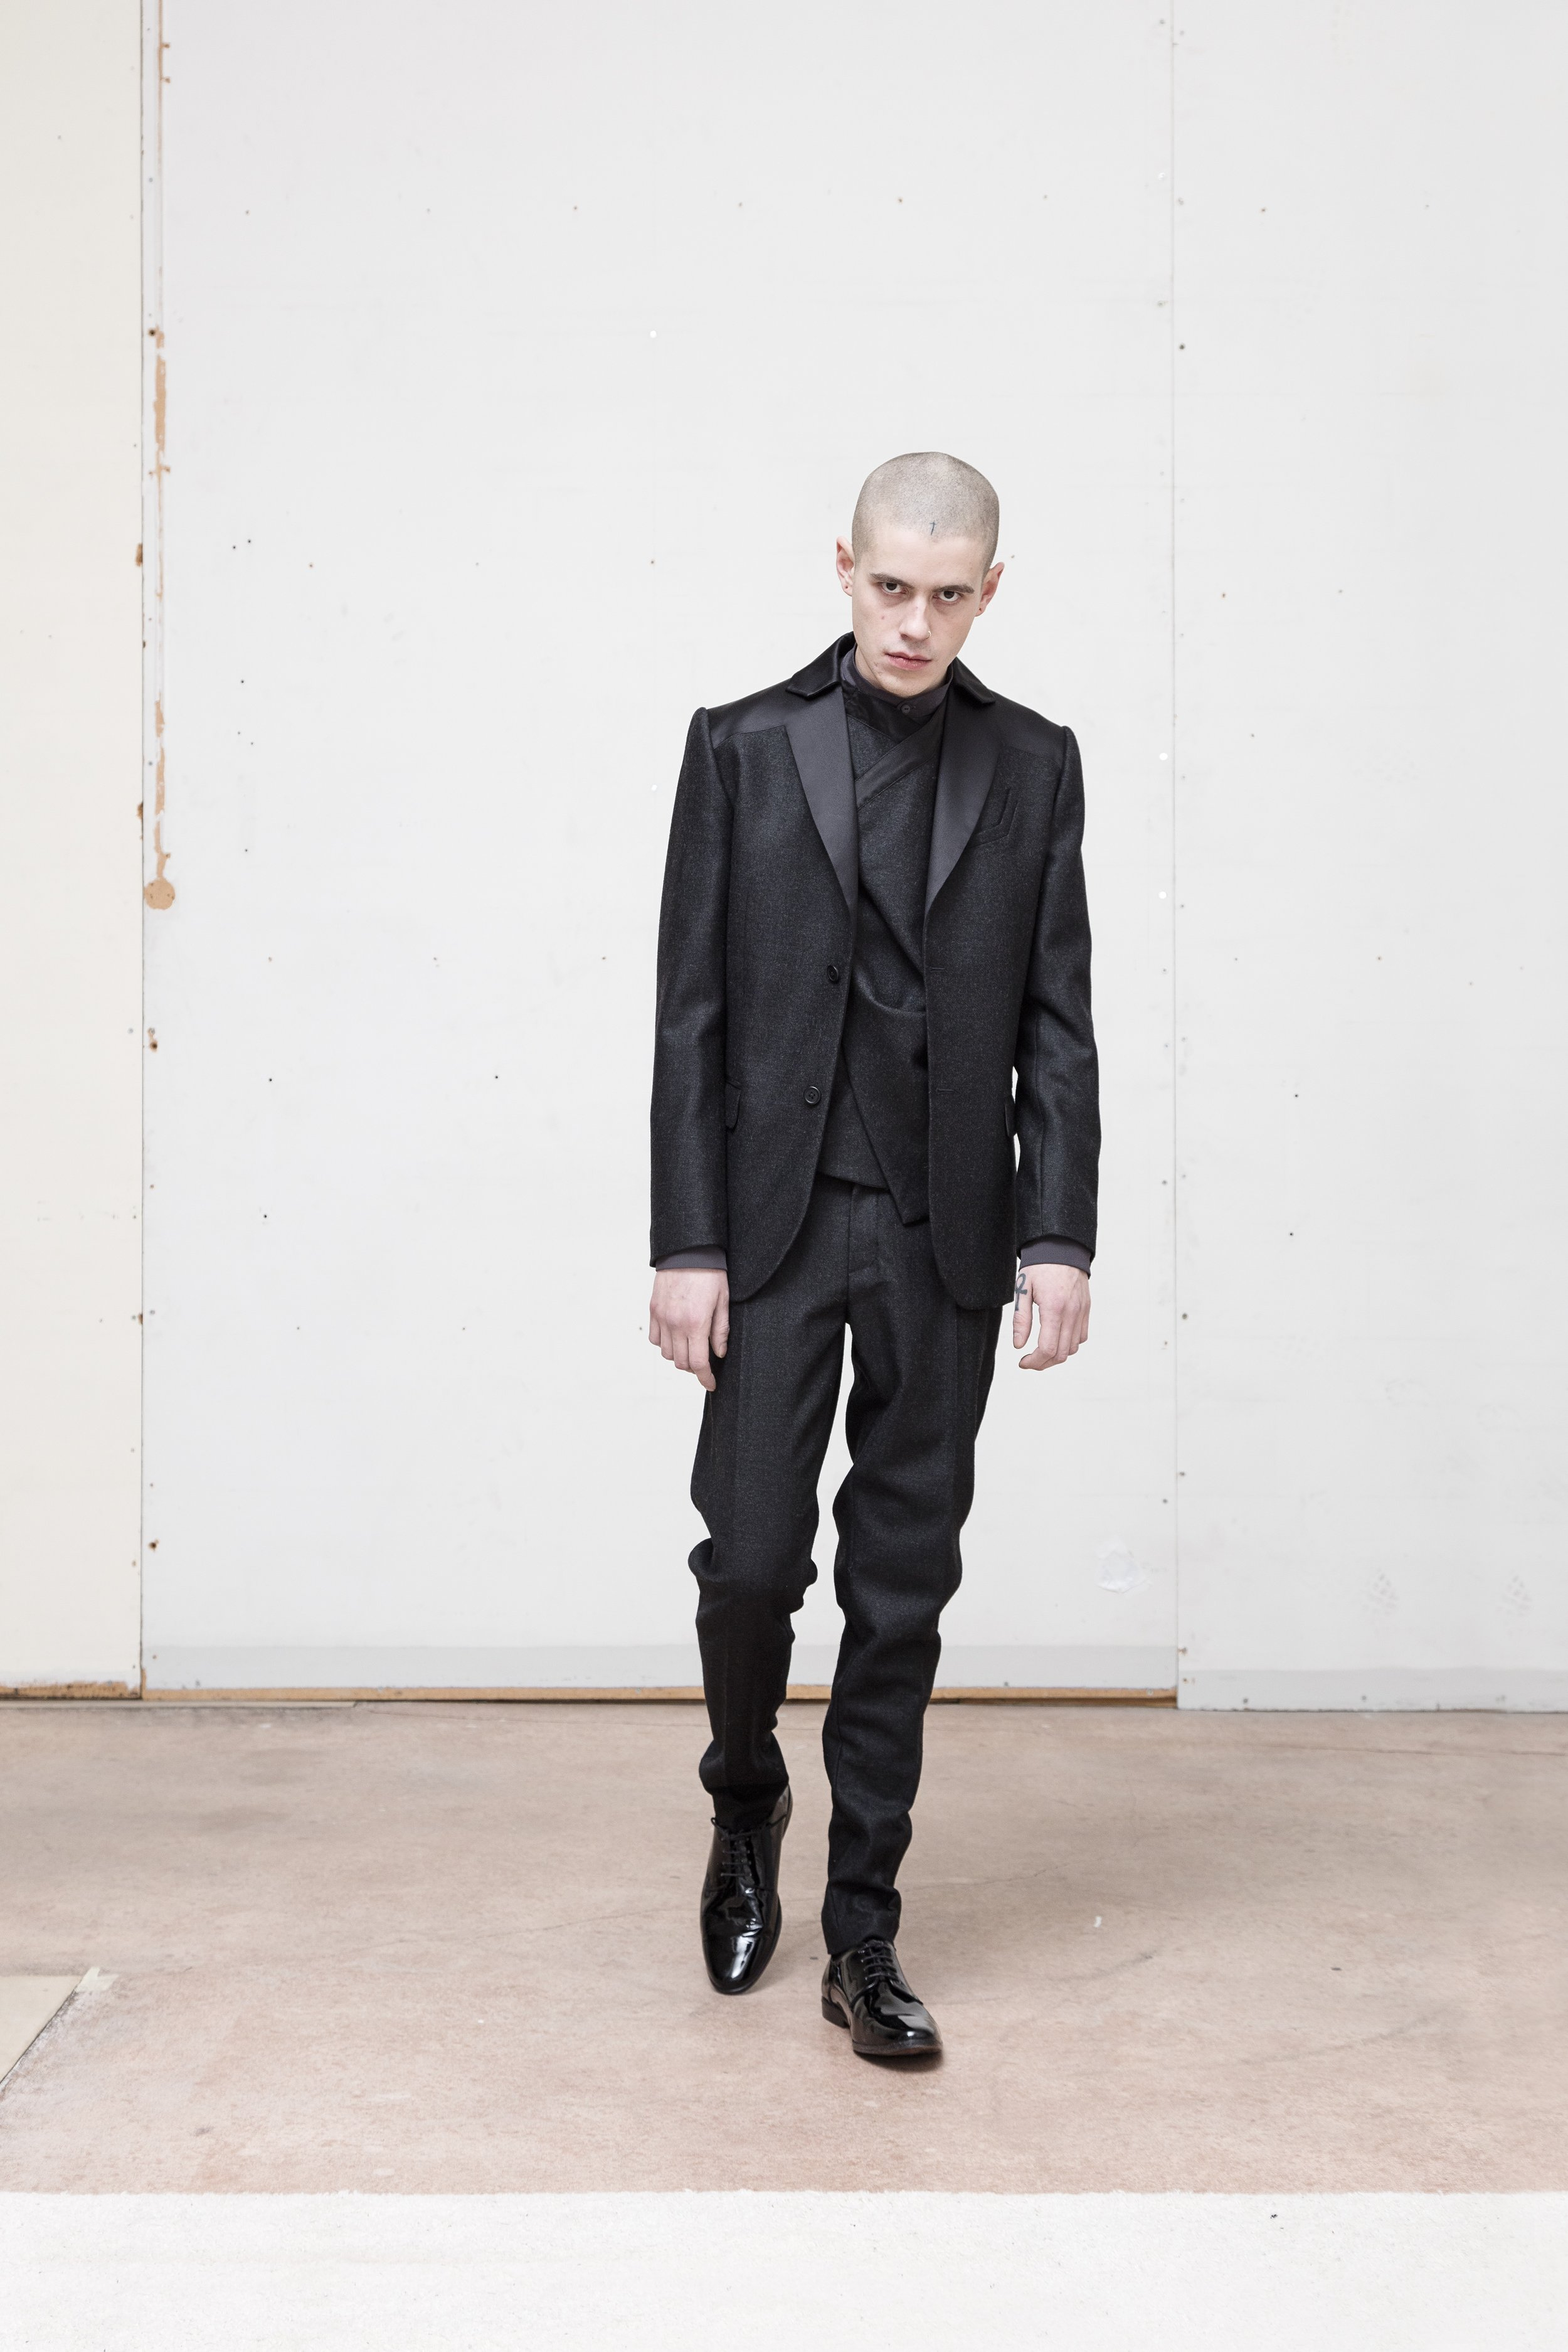 GARNISON_lookBook_FW17-1802_LOOK1.jpg